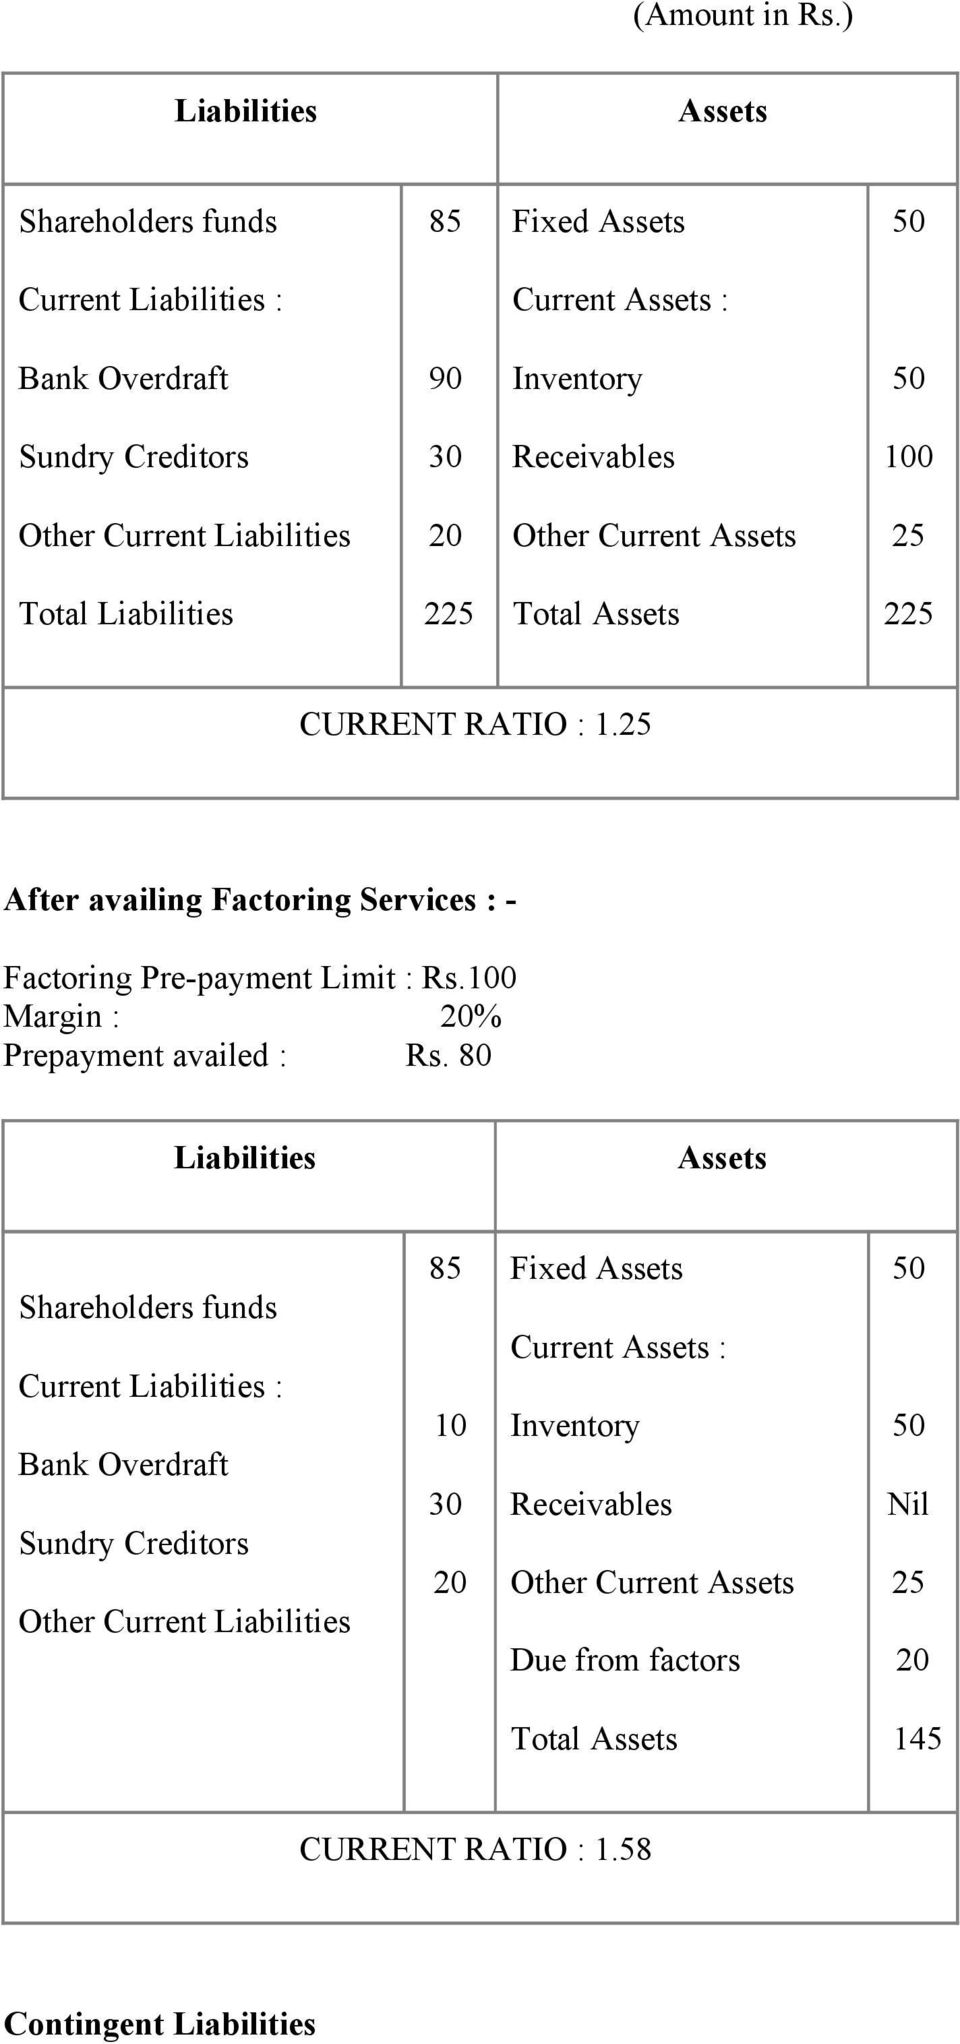 Liabilities Other Current Assets 25 Total Liabilities 225 Total Assets 225 CURRENT RATIO : 1.